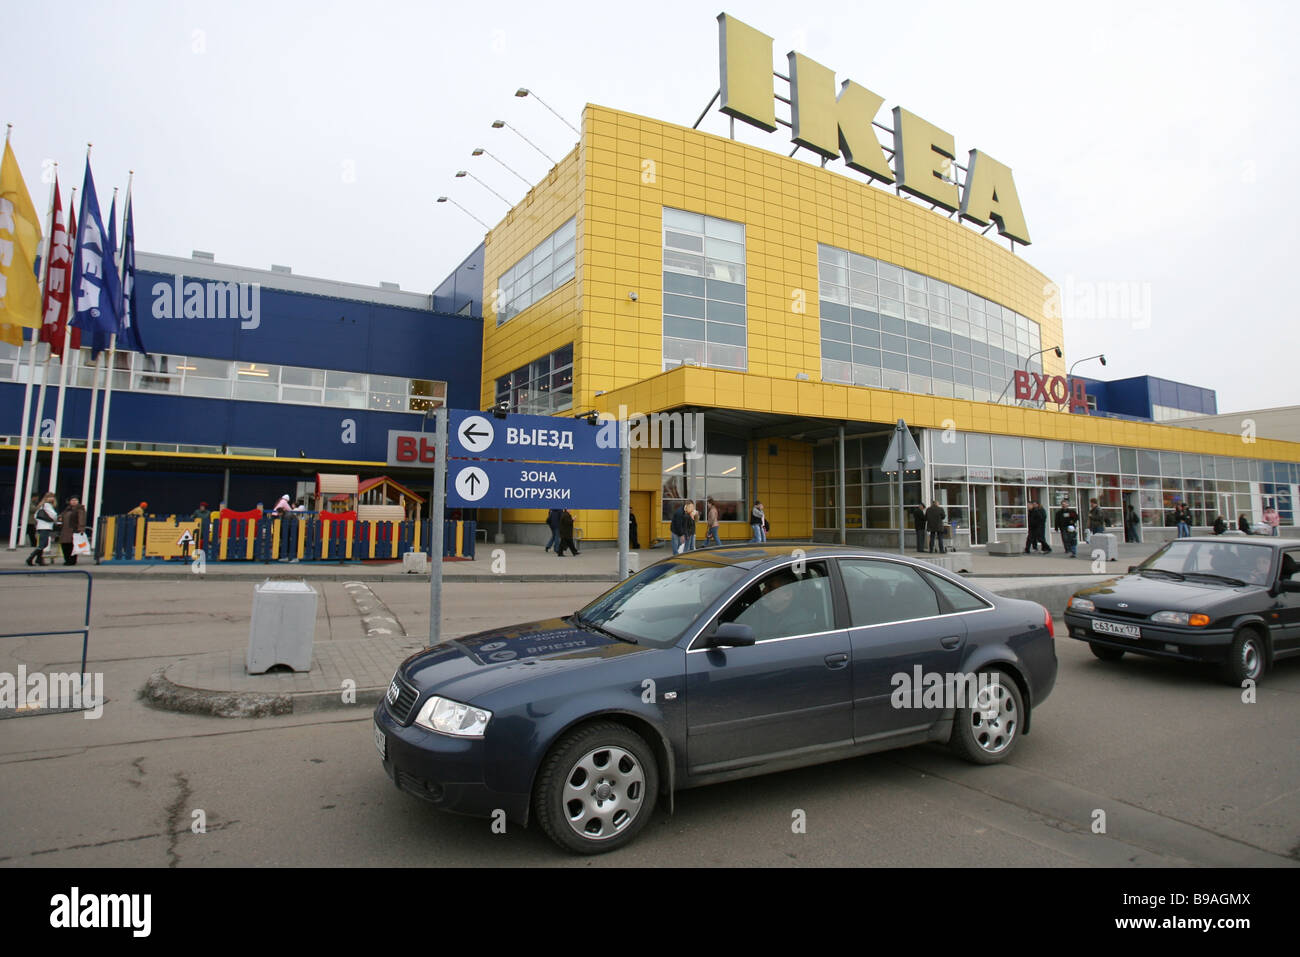 An IKEA furniture and accessory chain hypermarket in Khimki near Moscow - Stock Image